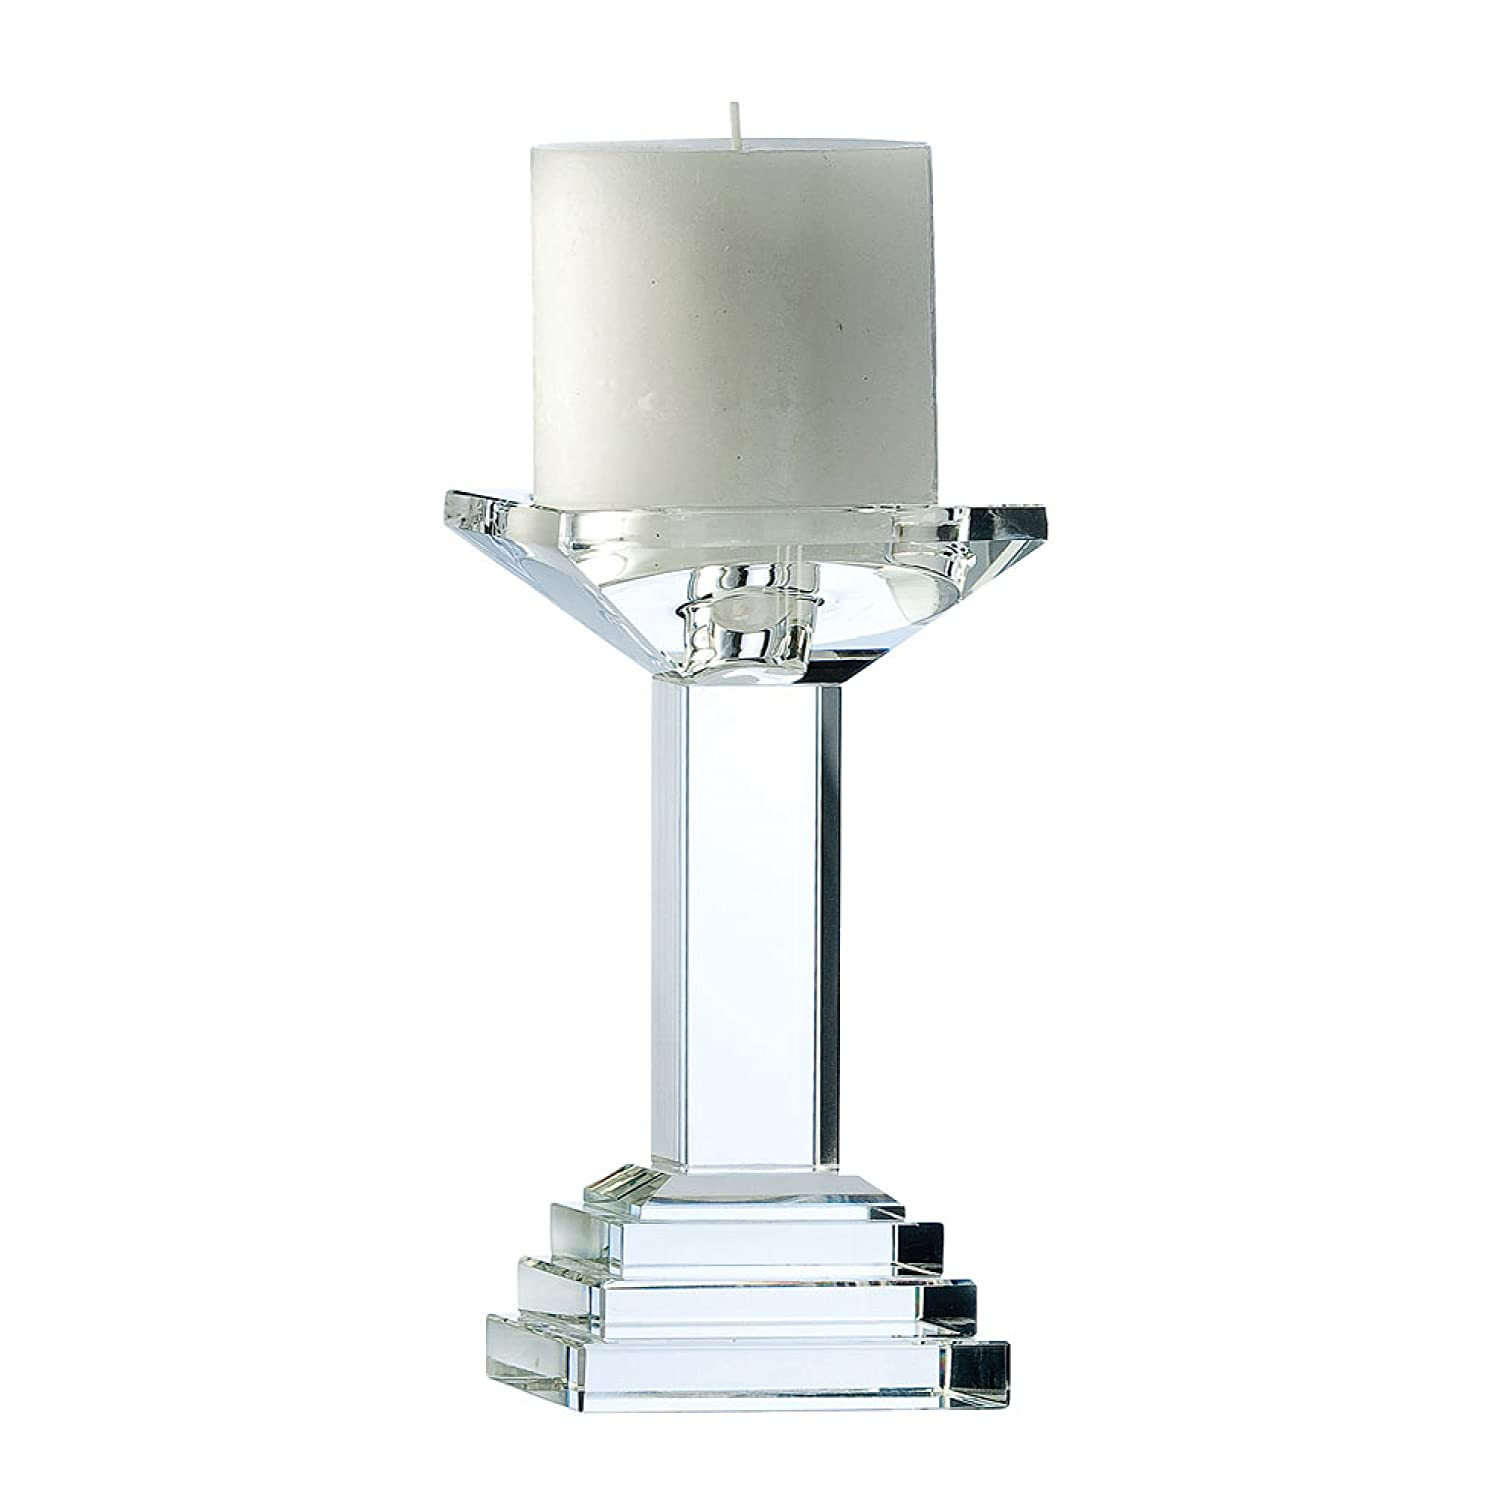 Galway 7-inch Paris Candleholder, Transparent PA80